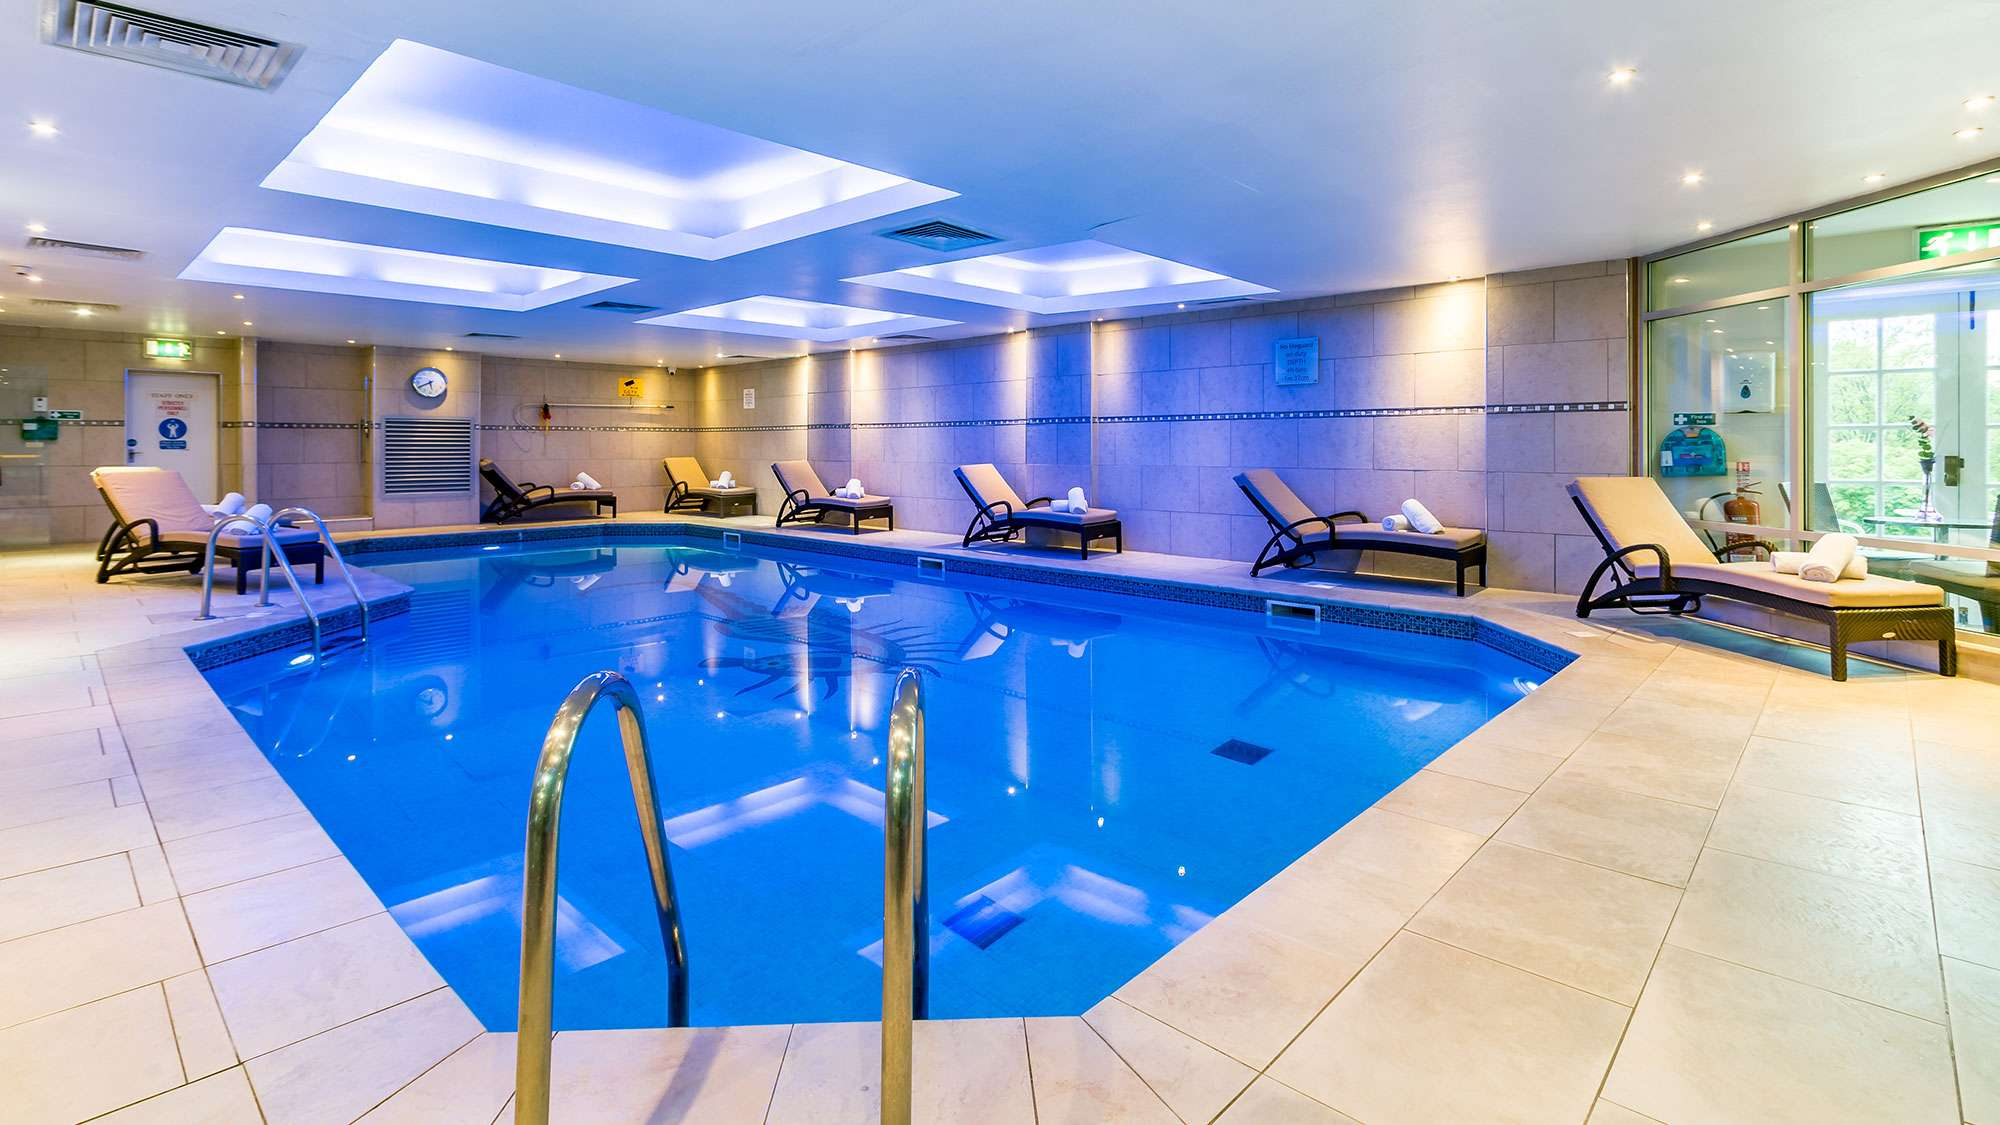 Swimming pool near wetehrby yorkshire for Fitness club with swimming pool